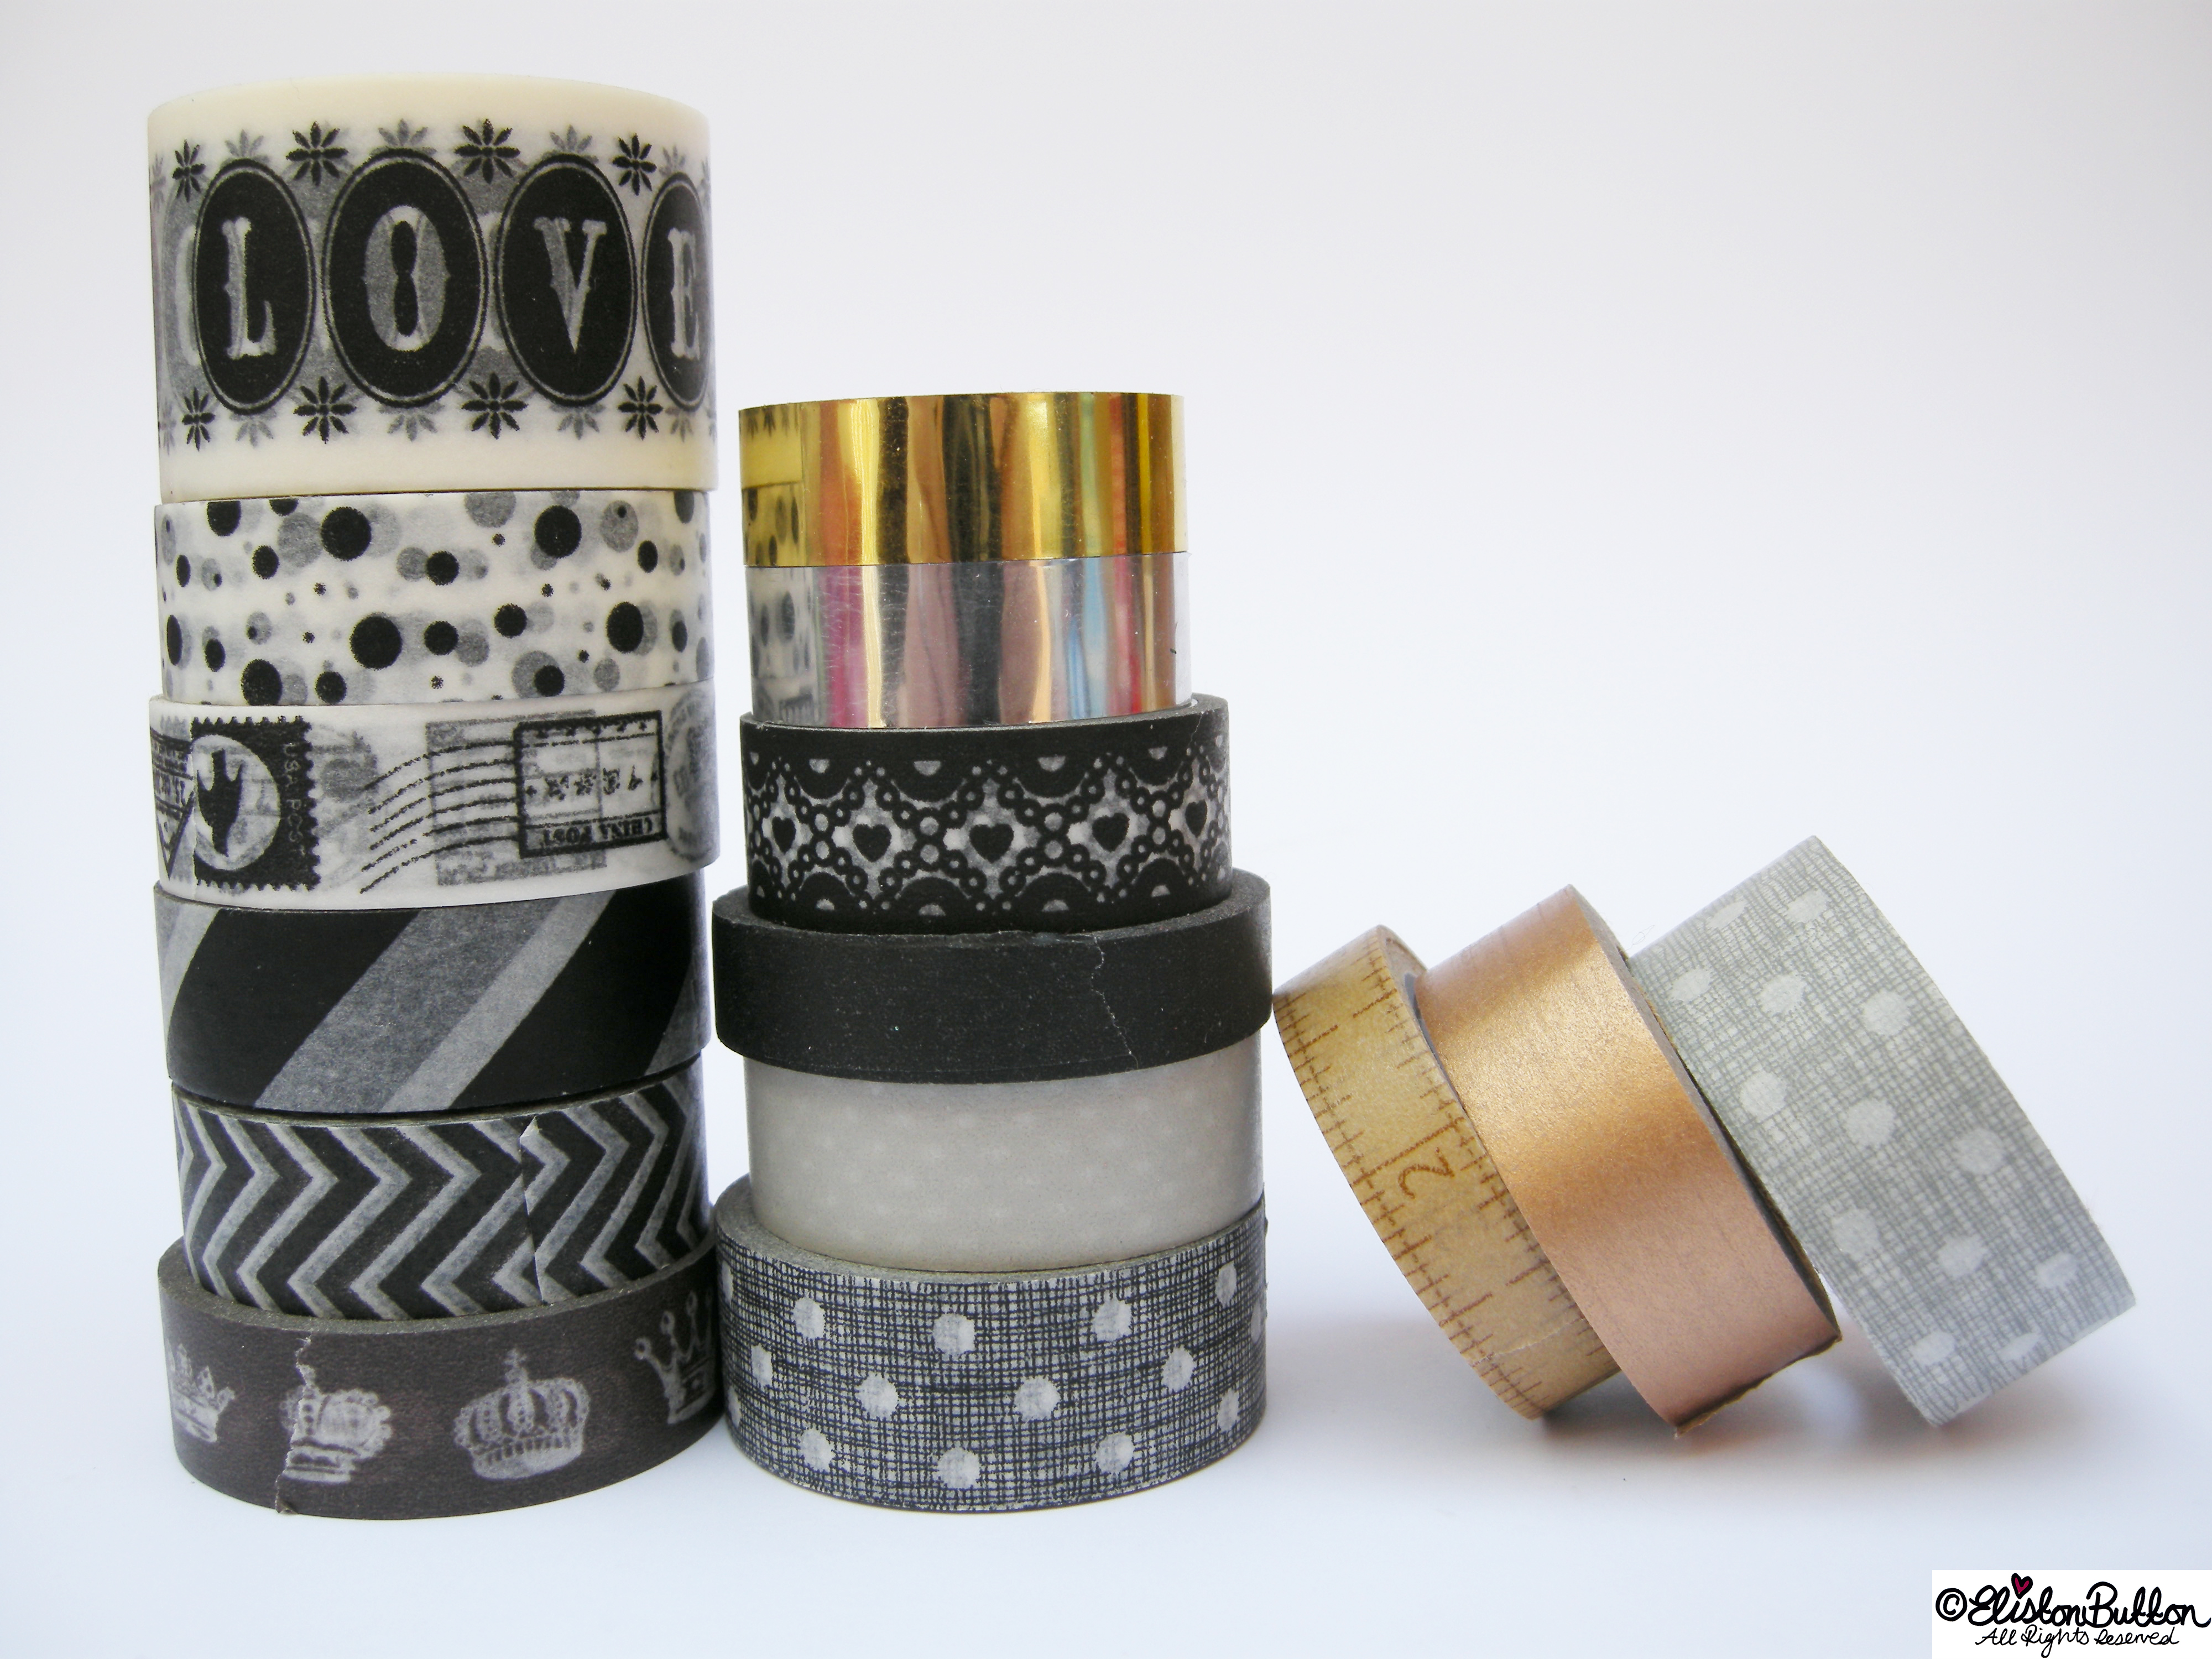 Monochrome and Foil Piles of Washi Tape Rolls - My Washi Tape Collection at www.elistonbutton.com - Eliston Button - That Crafty Kid – Art, Design, Craft & Adventure.